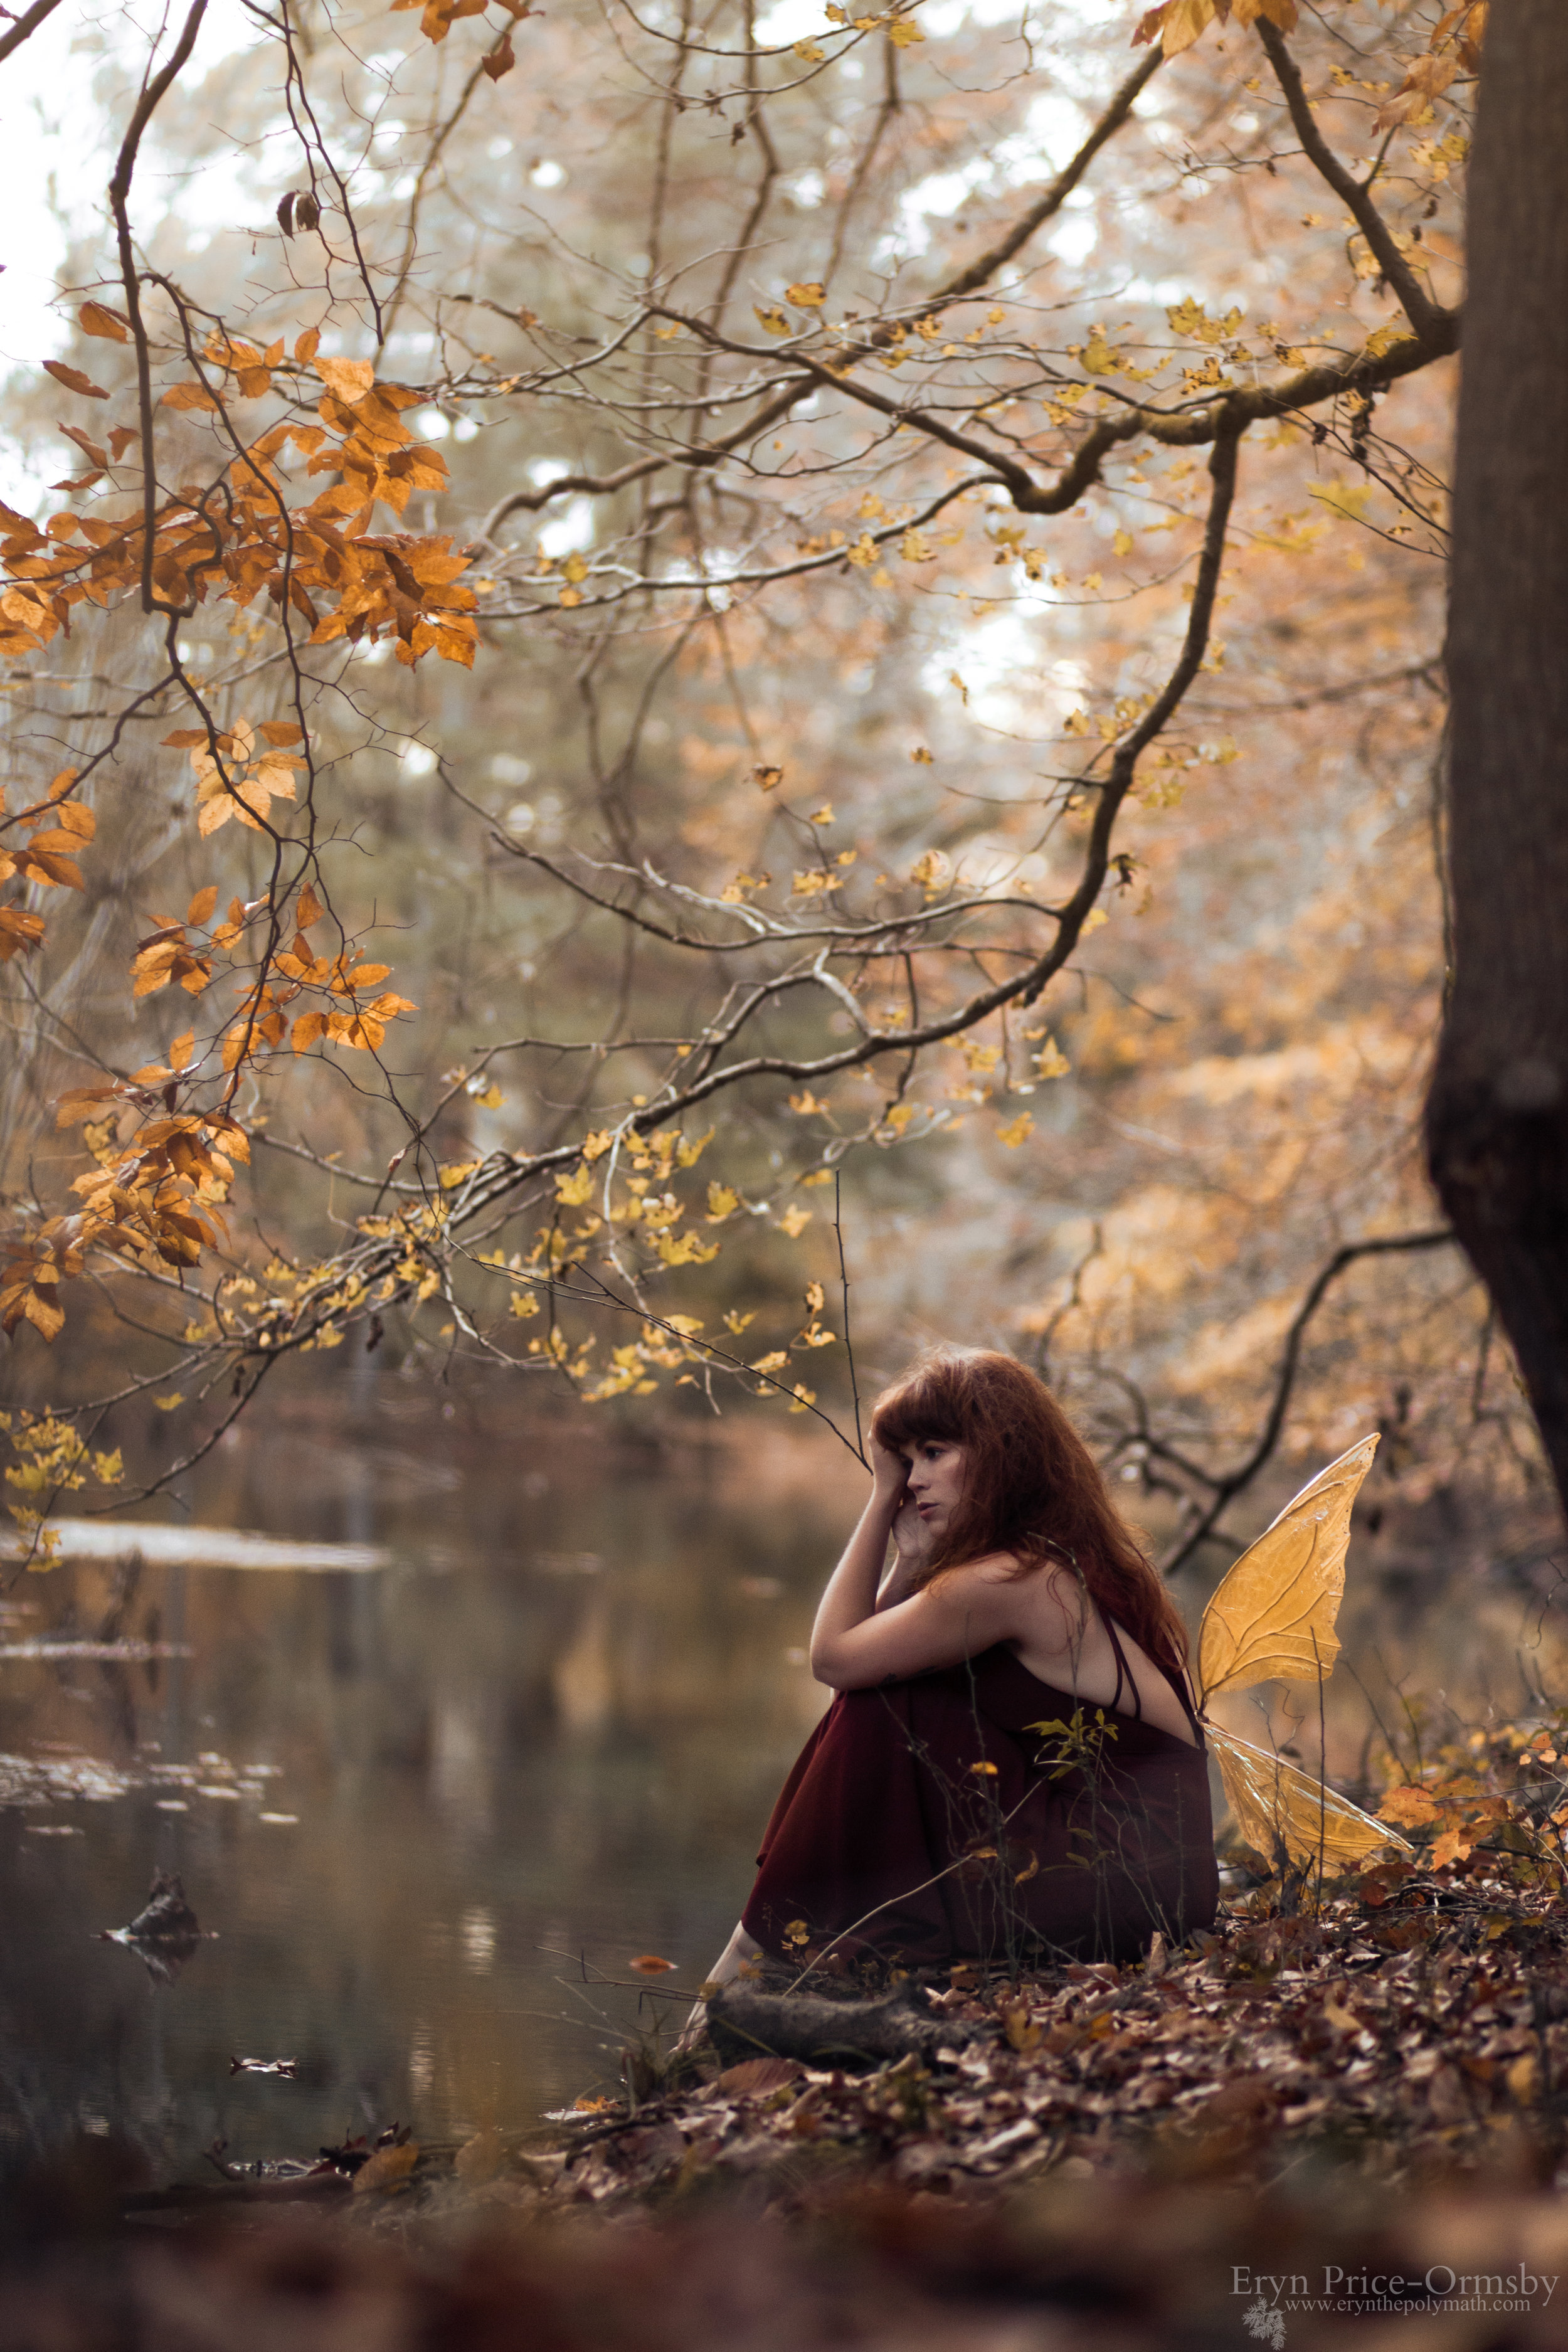 Autumn Faerie